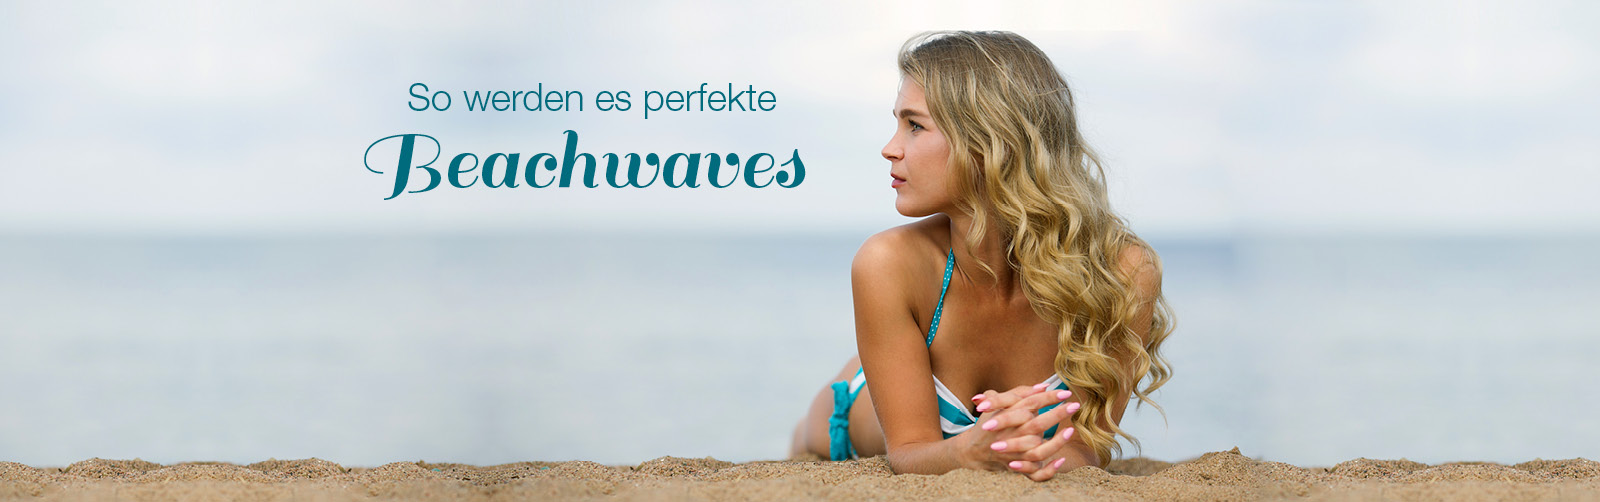 Beachwaves_2.jpg